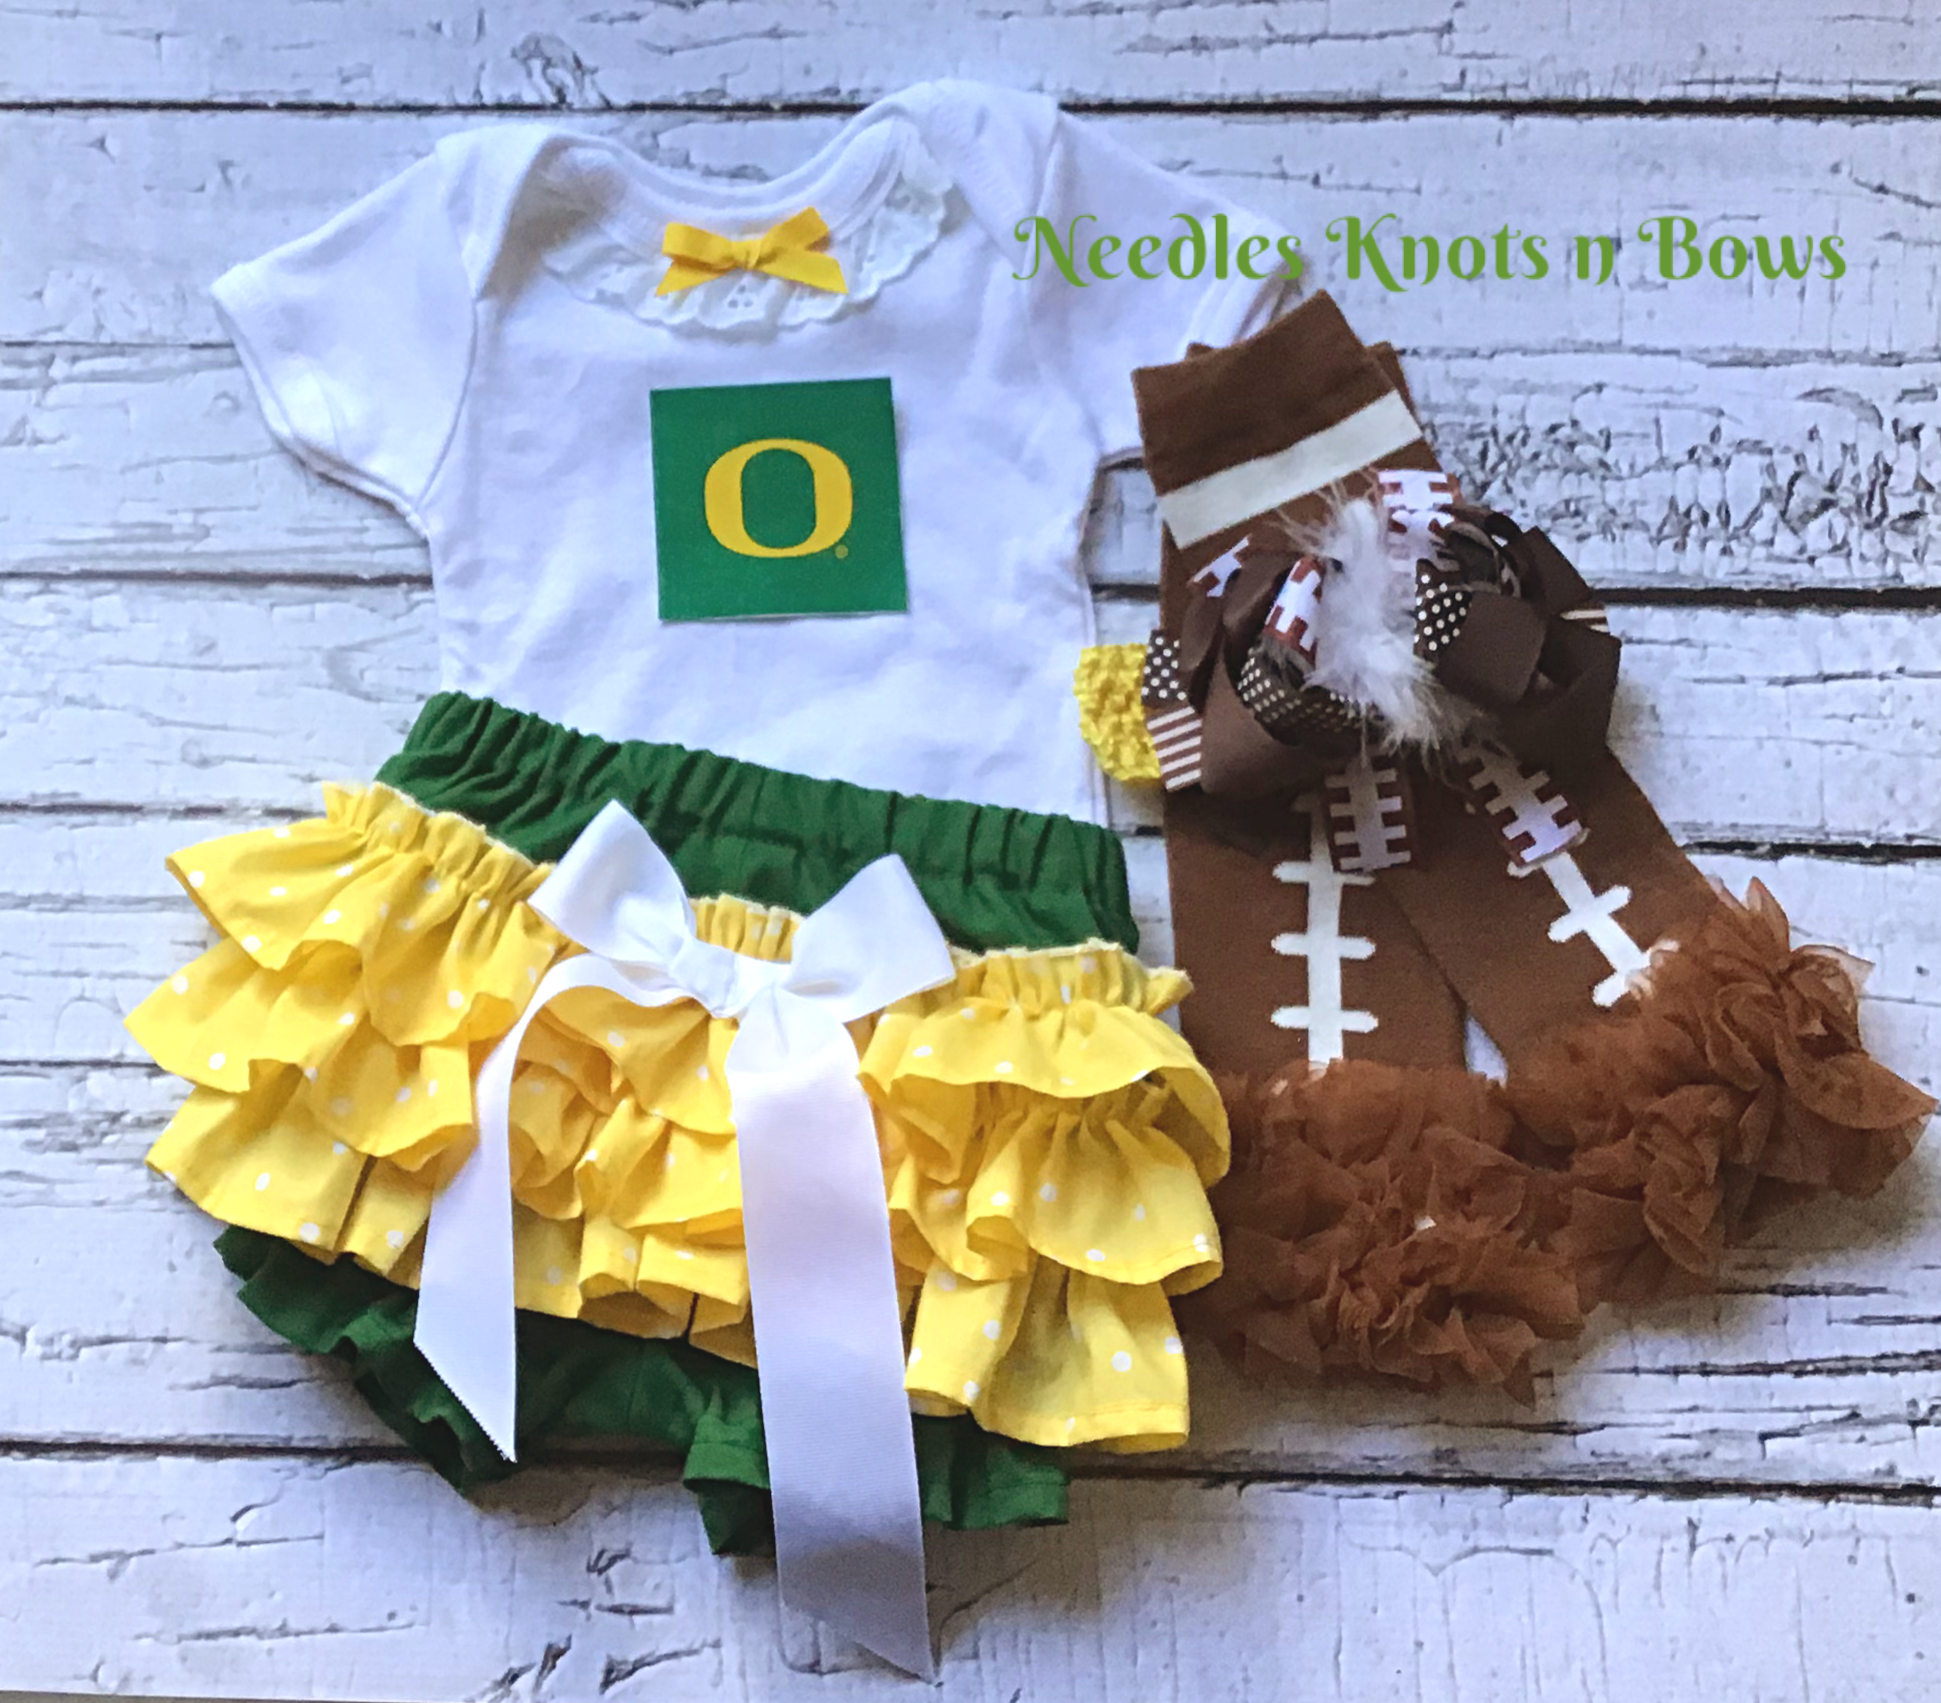 best service 0f9d6 d4d2e Girls Oregon Ducks Outfit, Baby Girls Ducks Coming Home Outfit, Girls  College Football Outfit from Needles Knots n Bows